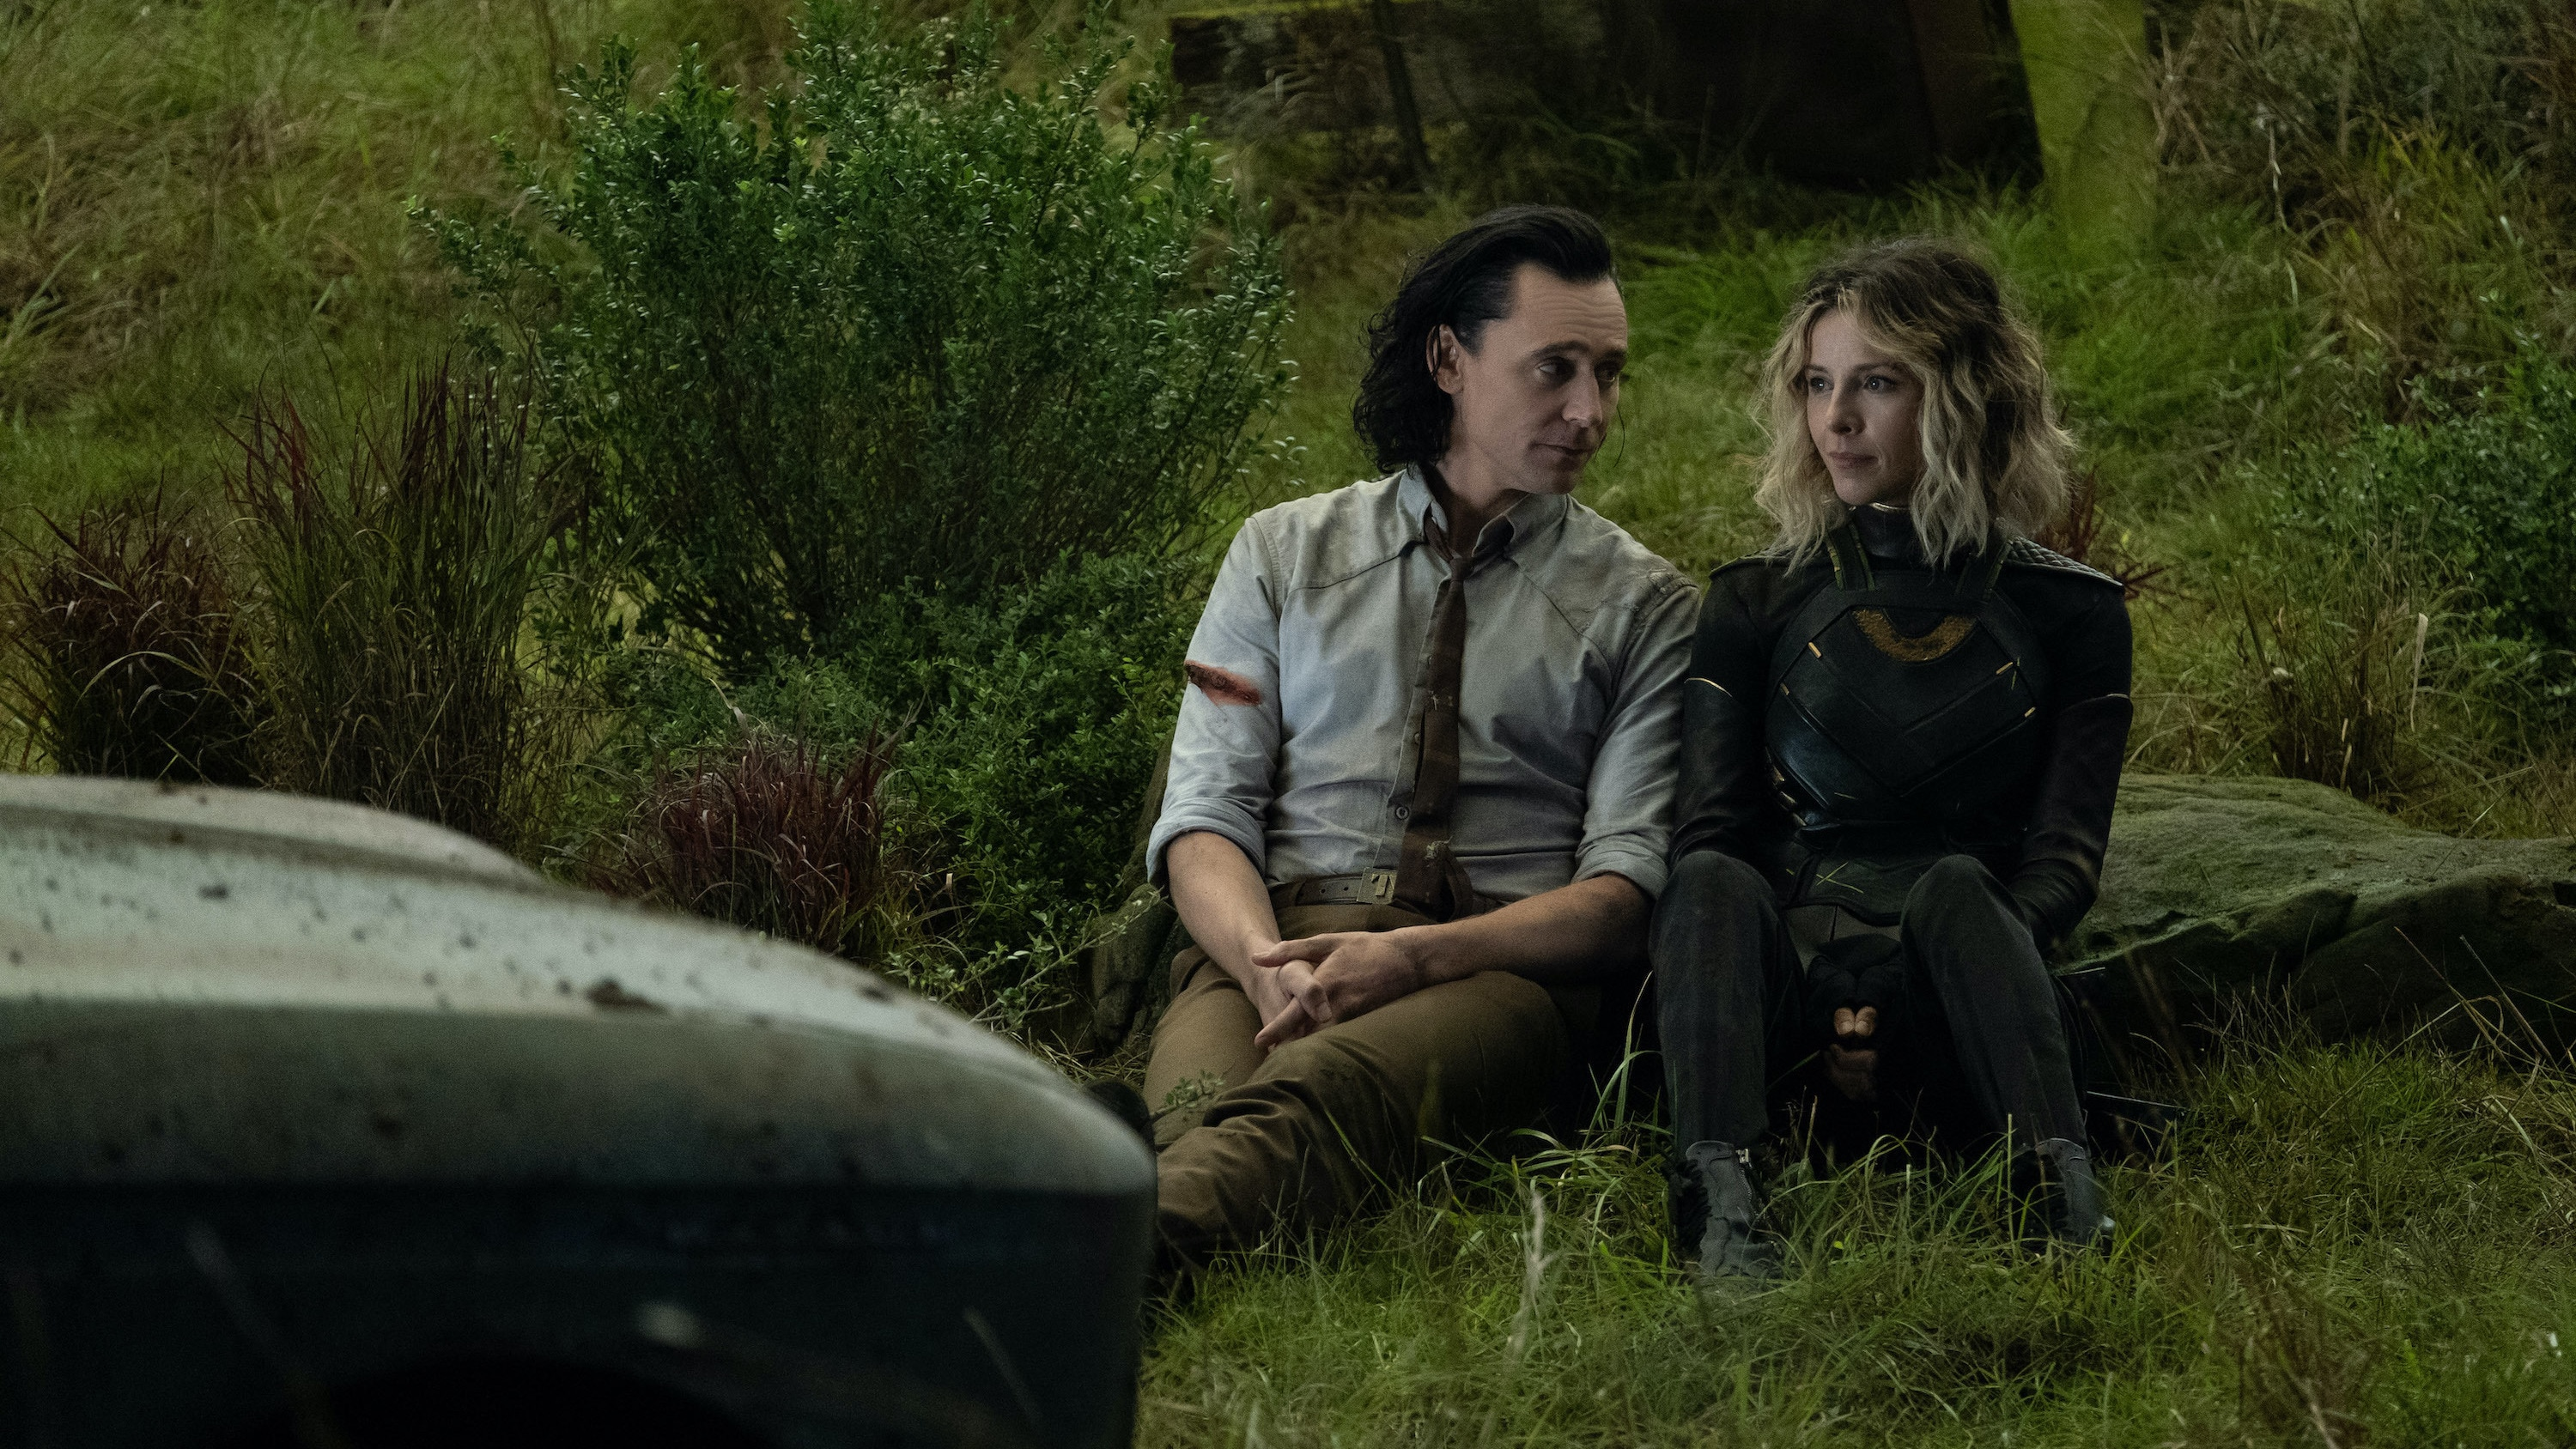 (L-R): Loki (TomHiddleston) and Sylvie (Sophia Di Martino) in Marvel Studios' LOKI, exclusively on Disney+. Photo by Chuck Zlotnick. ©Marvel Studios 2021. All Rights Reserved.